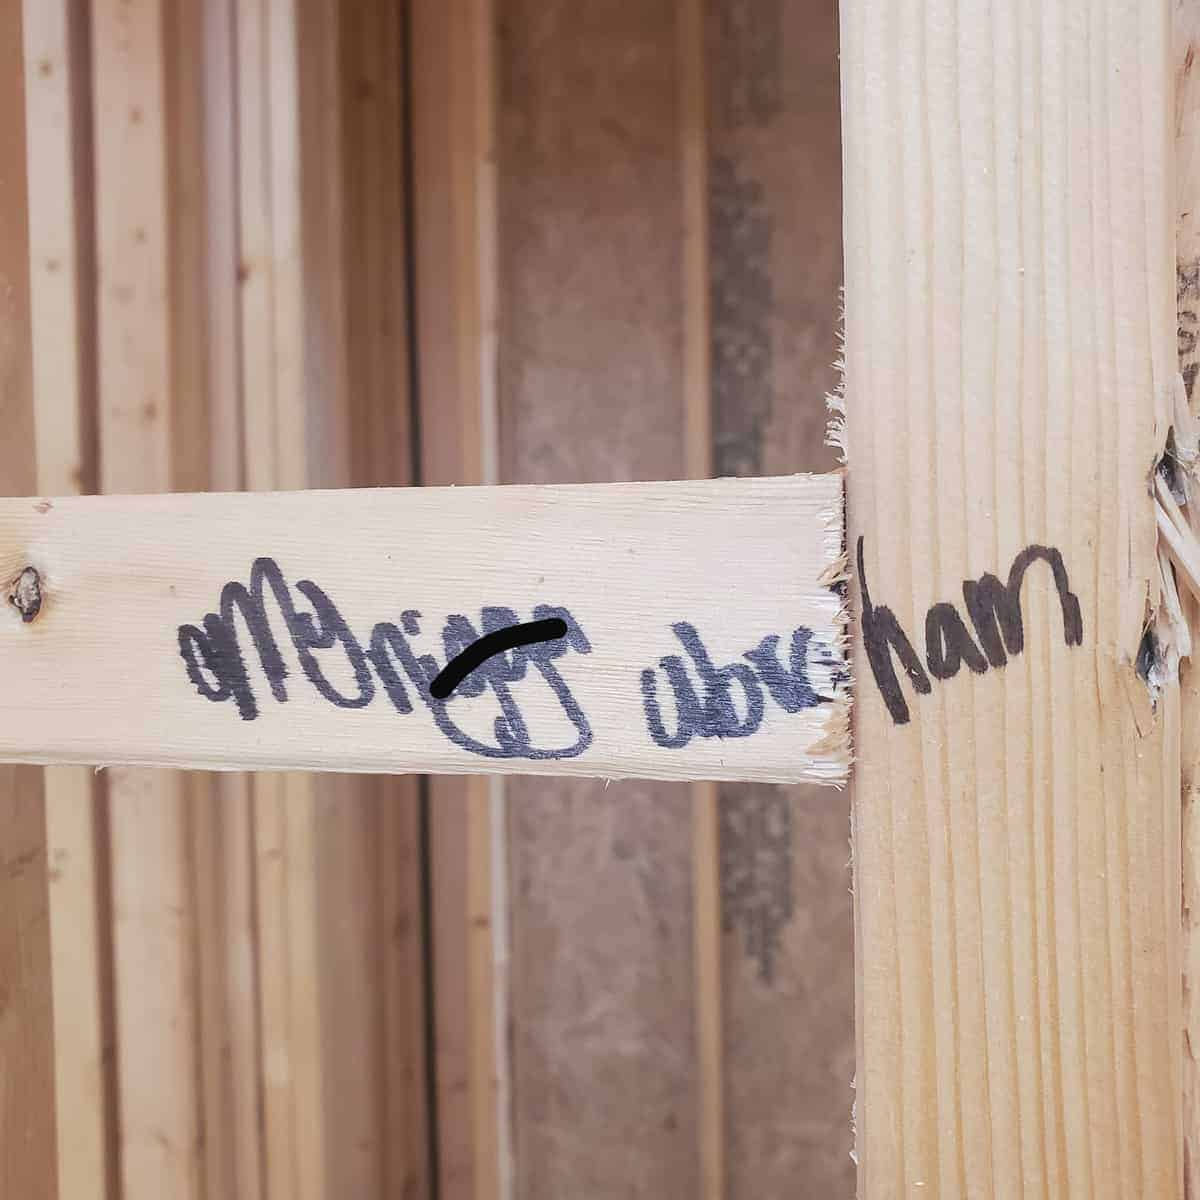 Racial slur on the framing during the building and closing stage